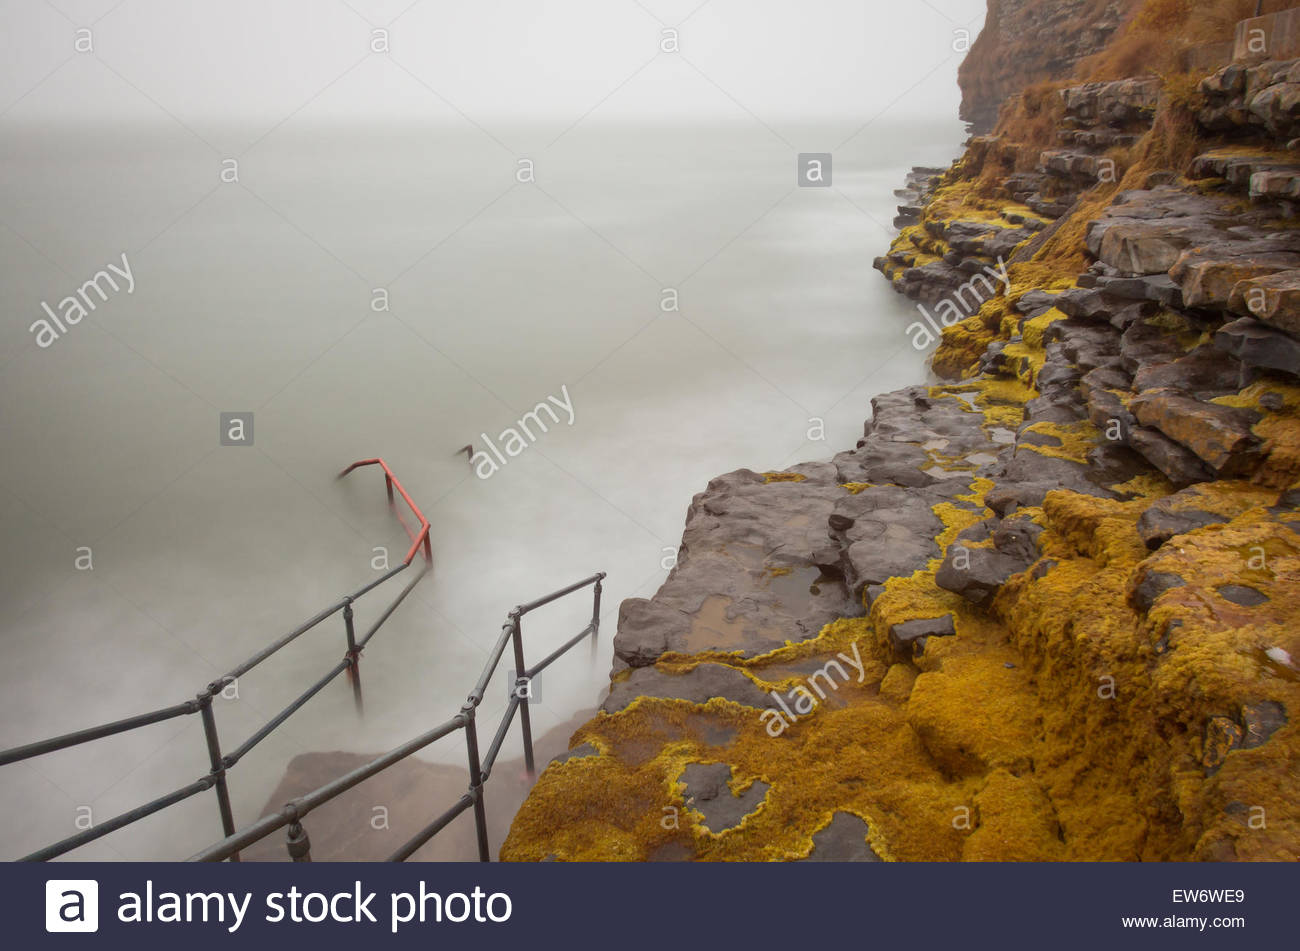 A long exposure of the steps at Porthkerry caravan park at high tide. Stock Photo